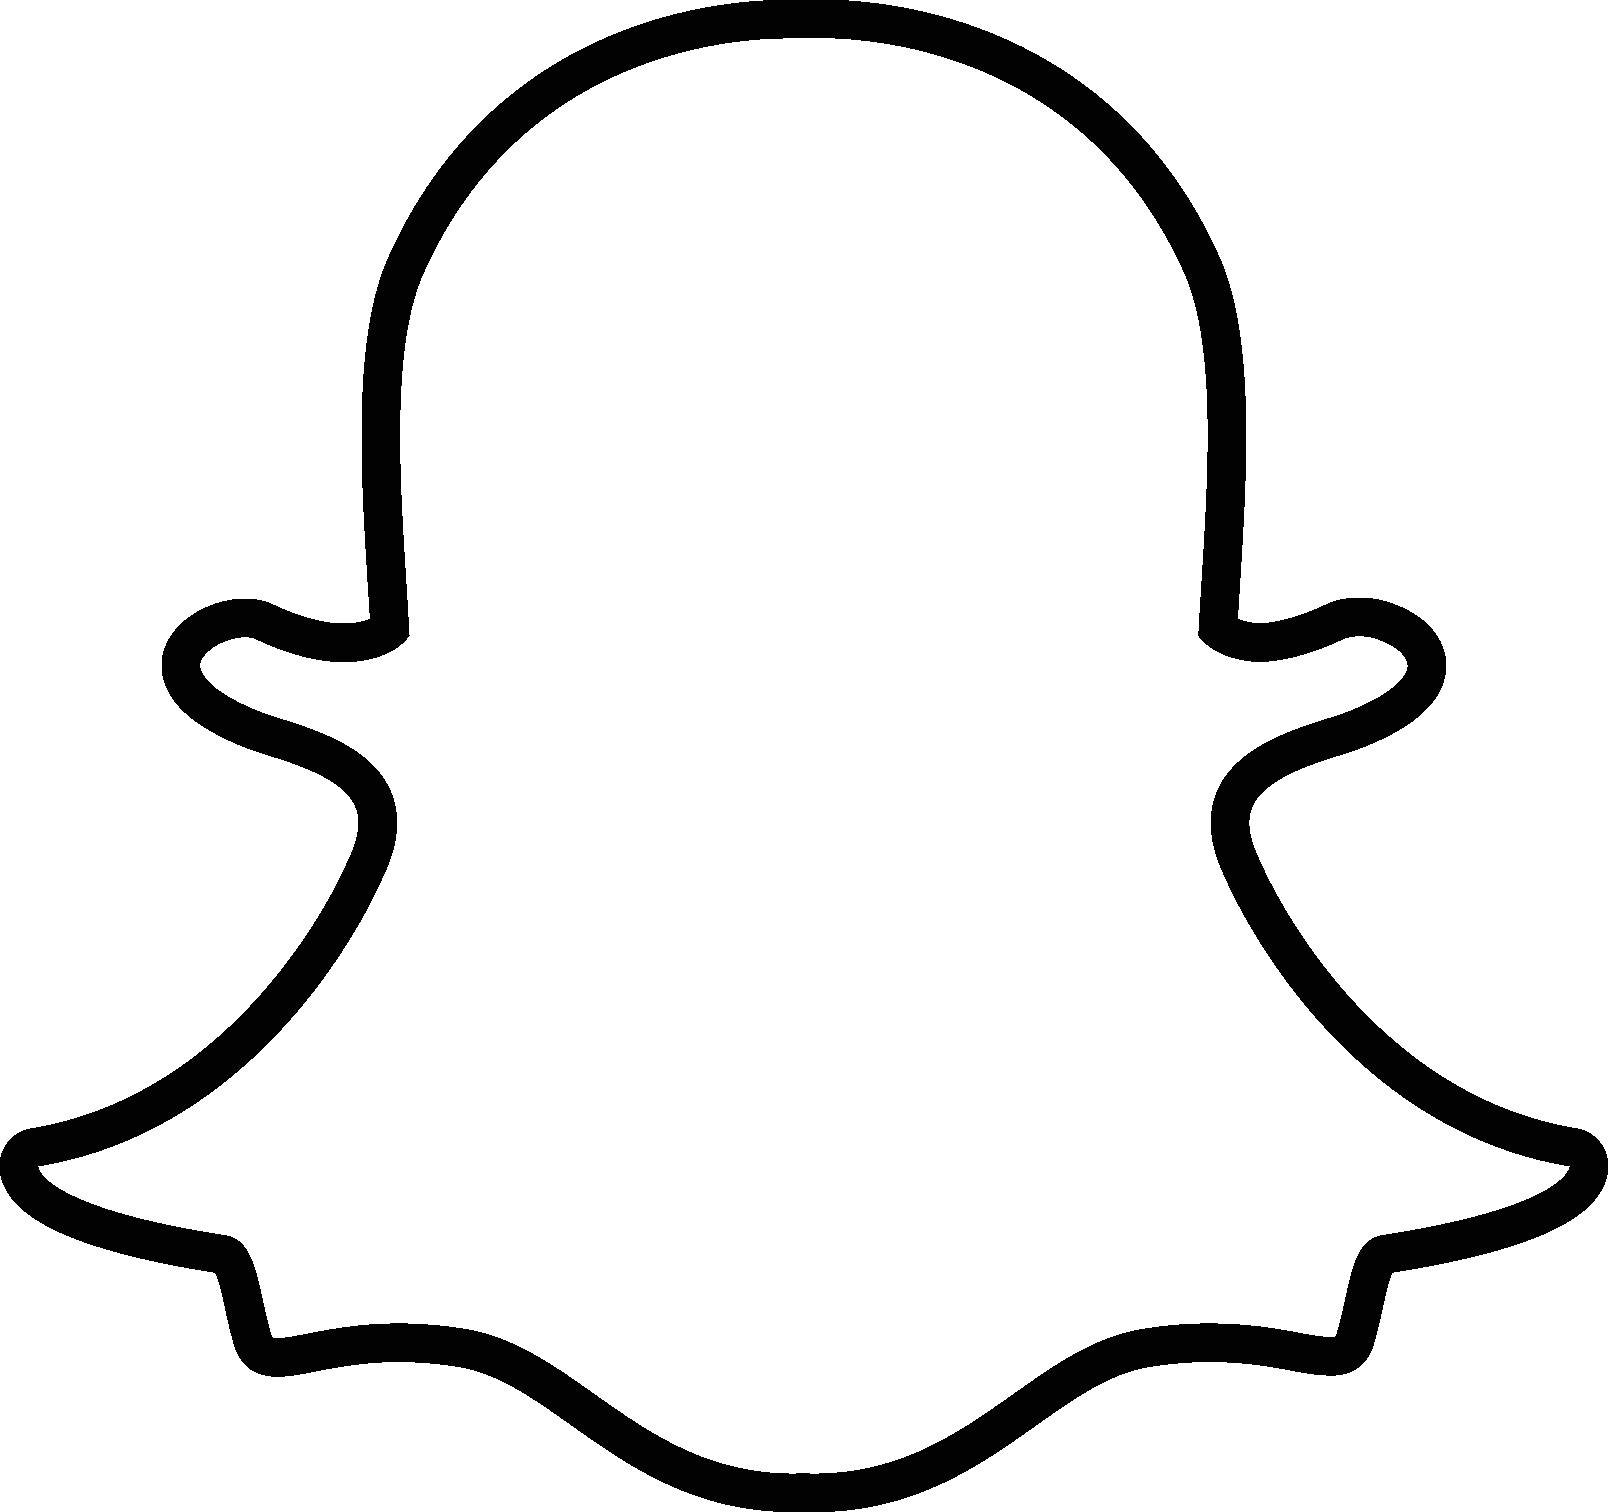 Tags: snapchat app, online messaging apps